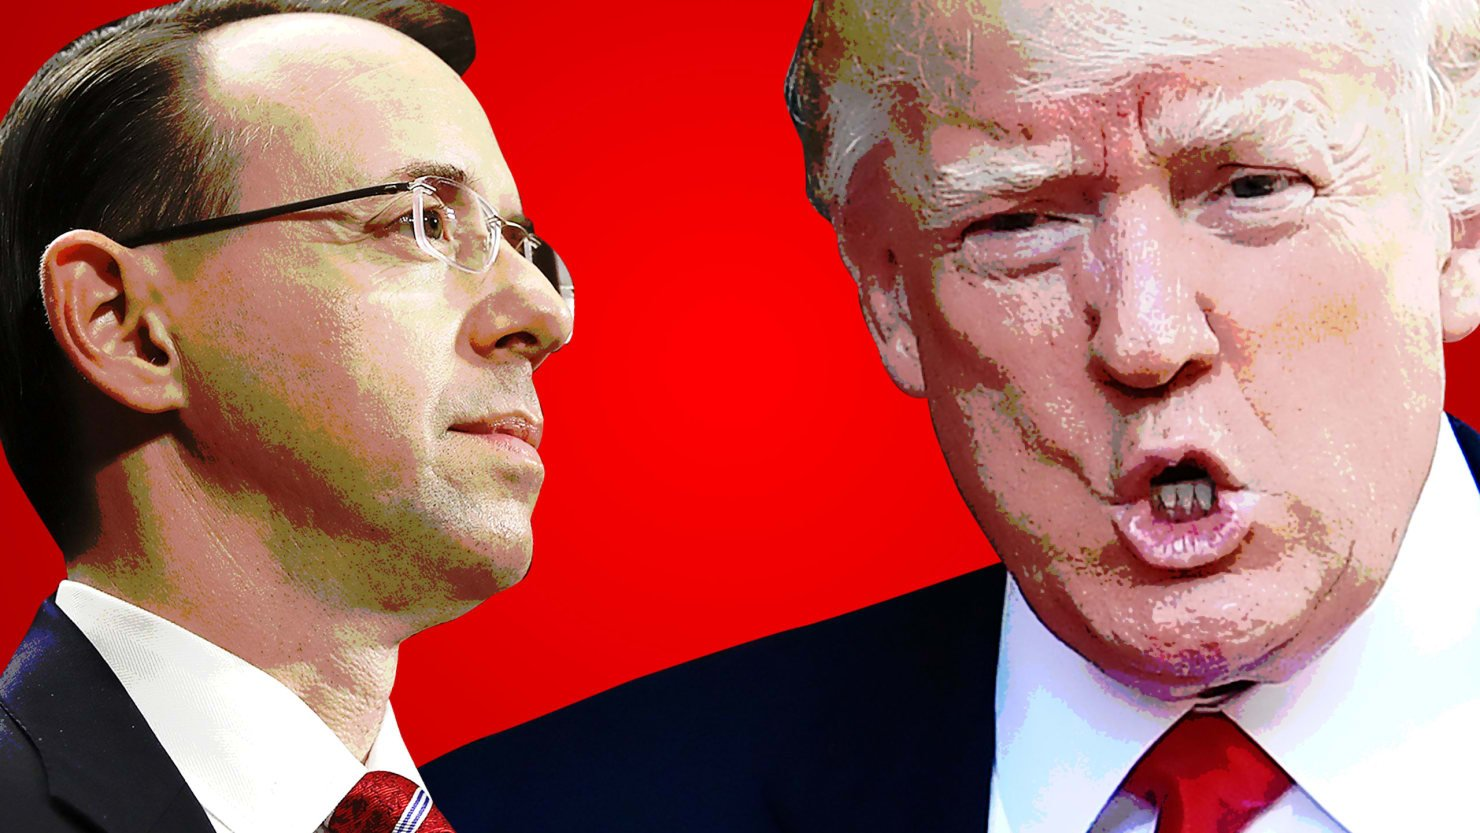 NEW: Trump declares war on Rosenstein: 'He has no qualms about throwing him under a bus' https://t.co/EFsJvNRh0L https://t.co/HnWWYEf9Oy